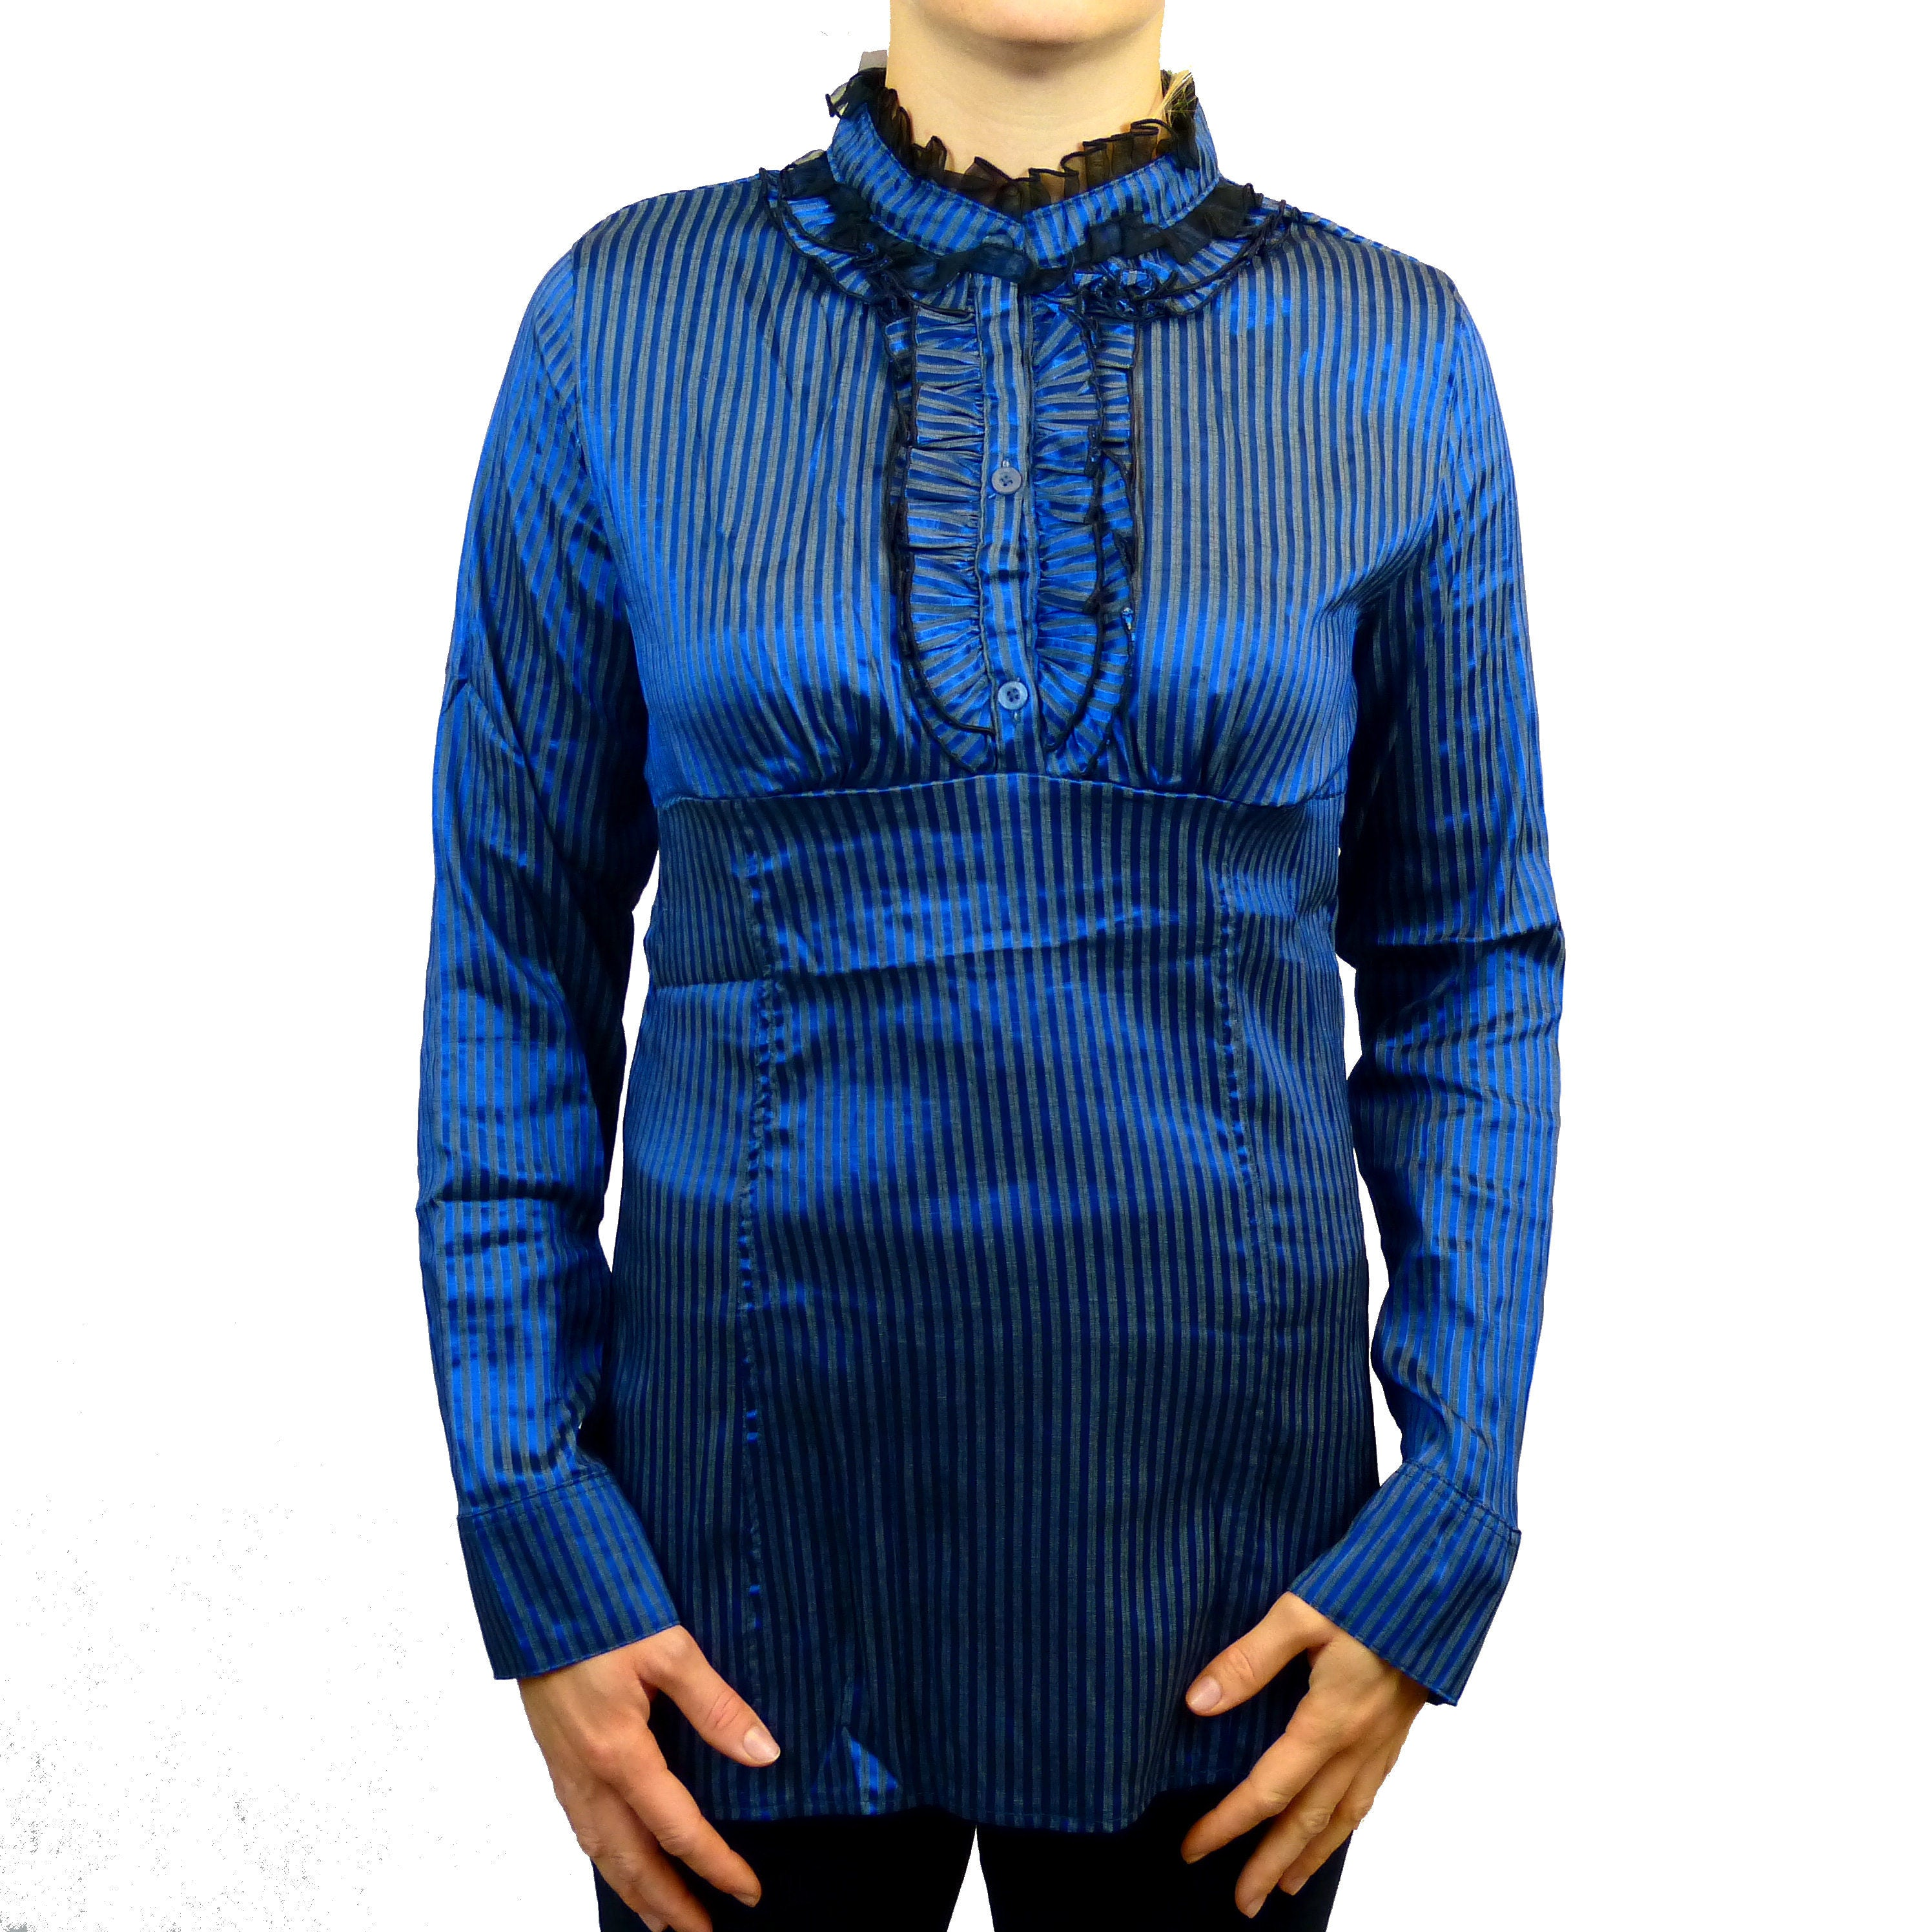 Sebix - Victorian Long Sleeve Blouse with Mandarin Collar - Blue